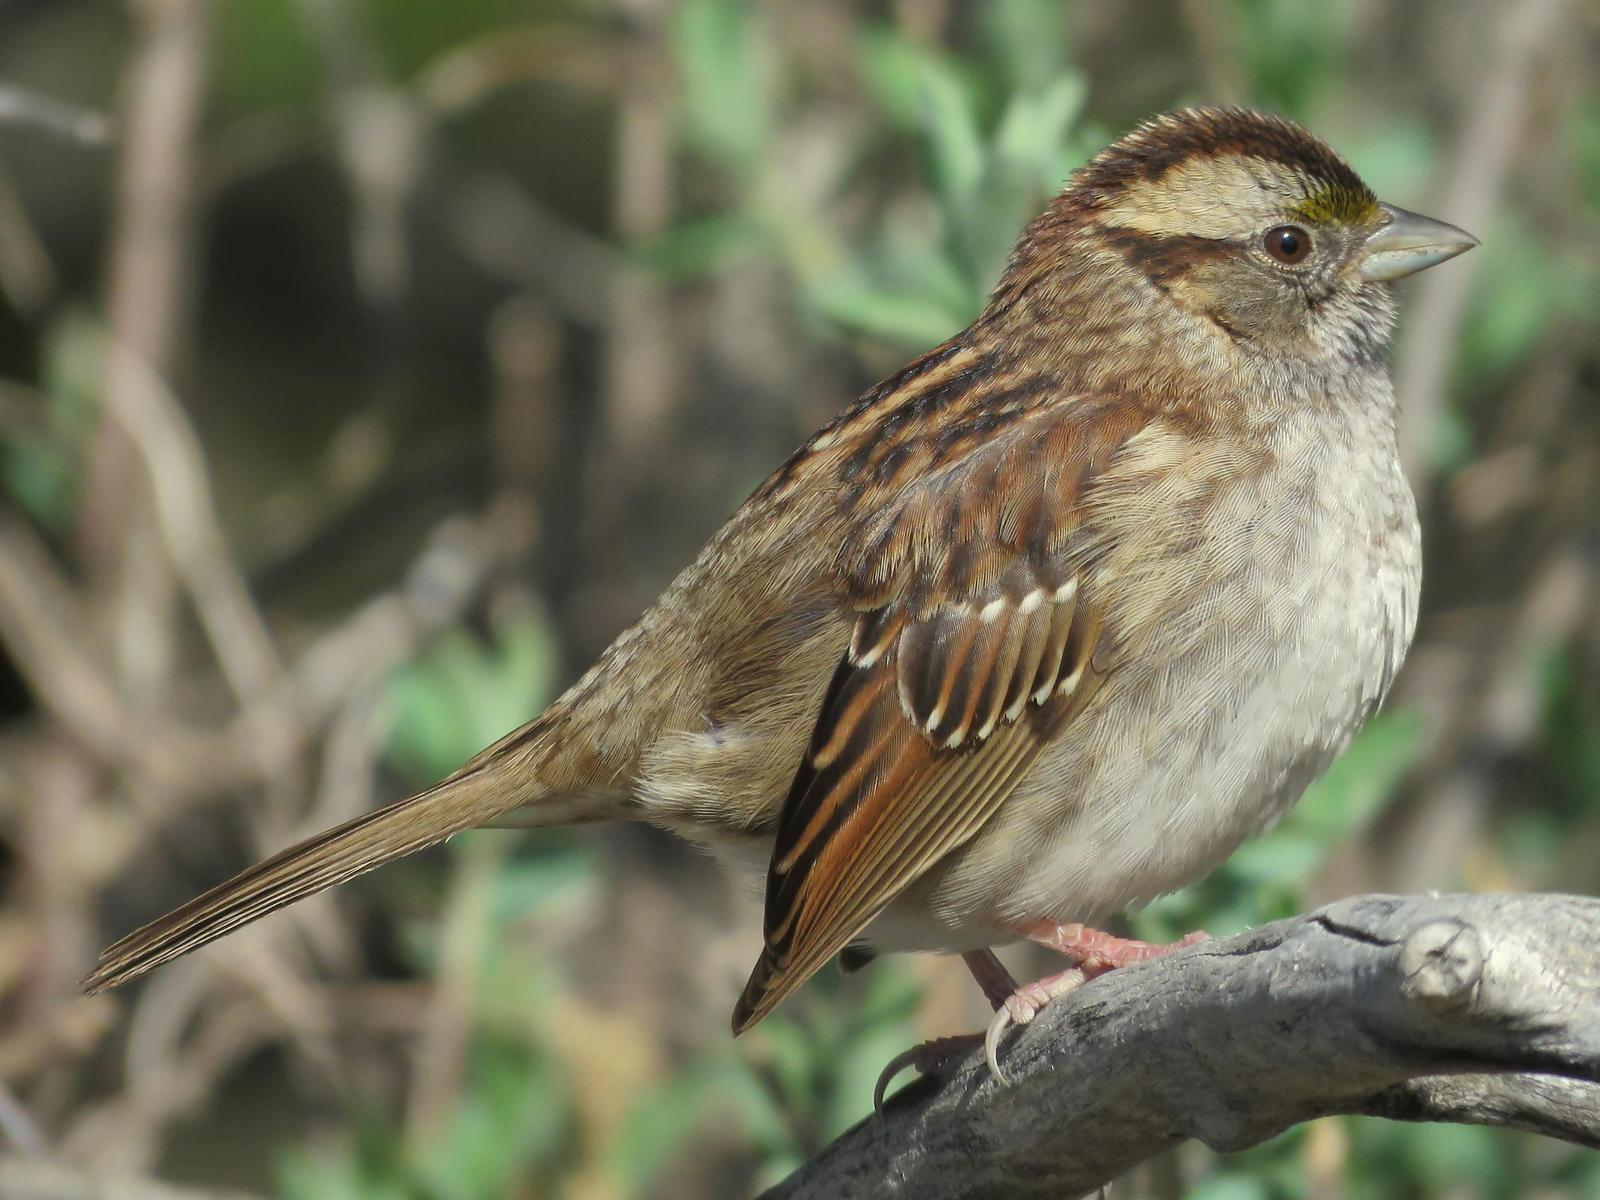 White-throated Sparrow Photo by Bob Neugebauer